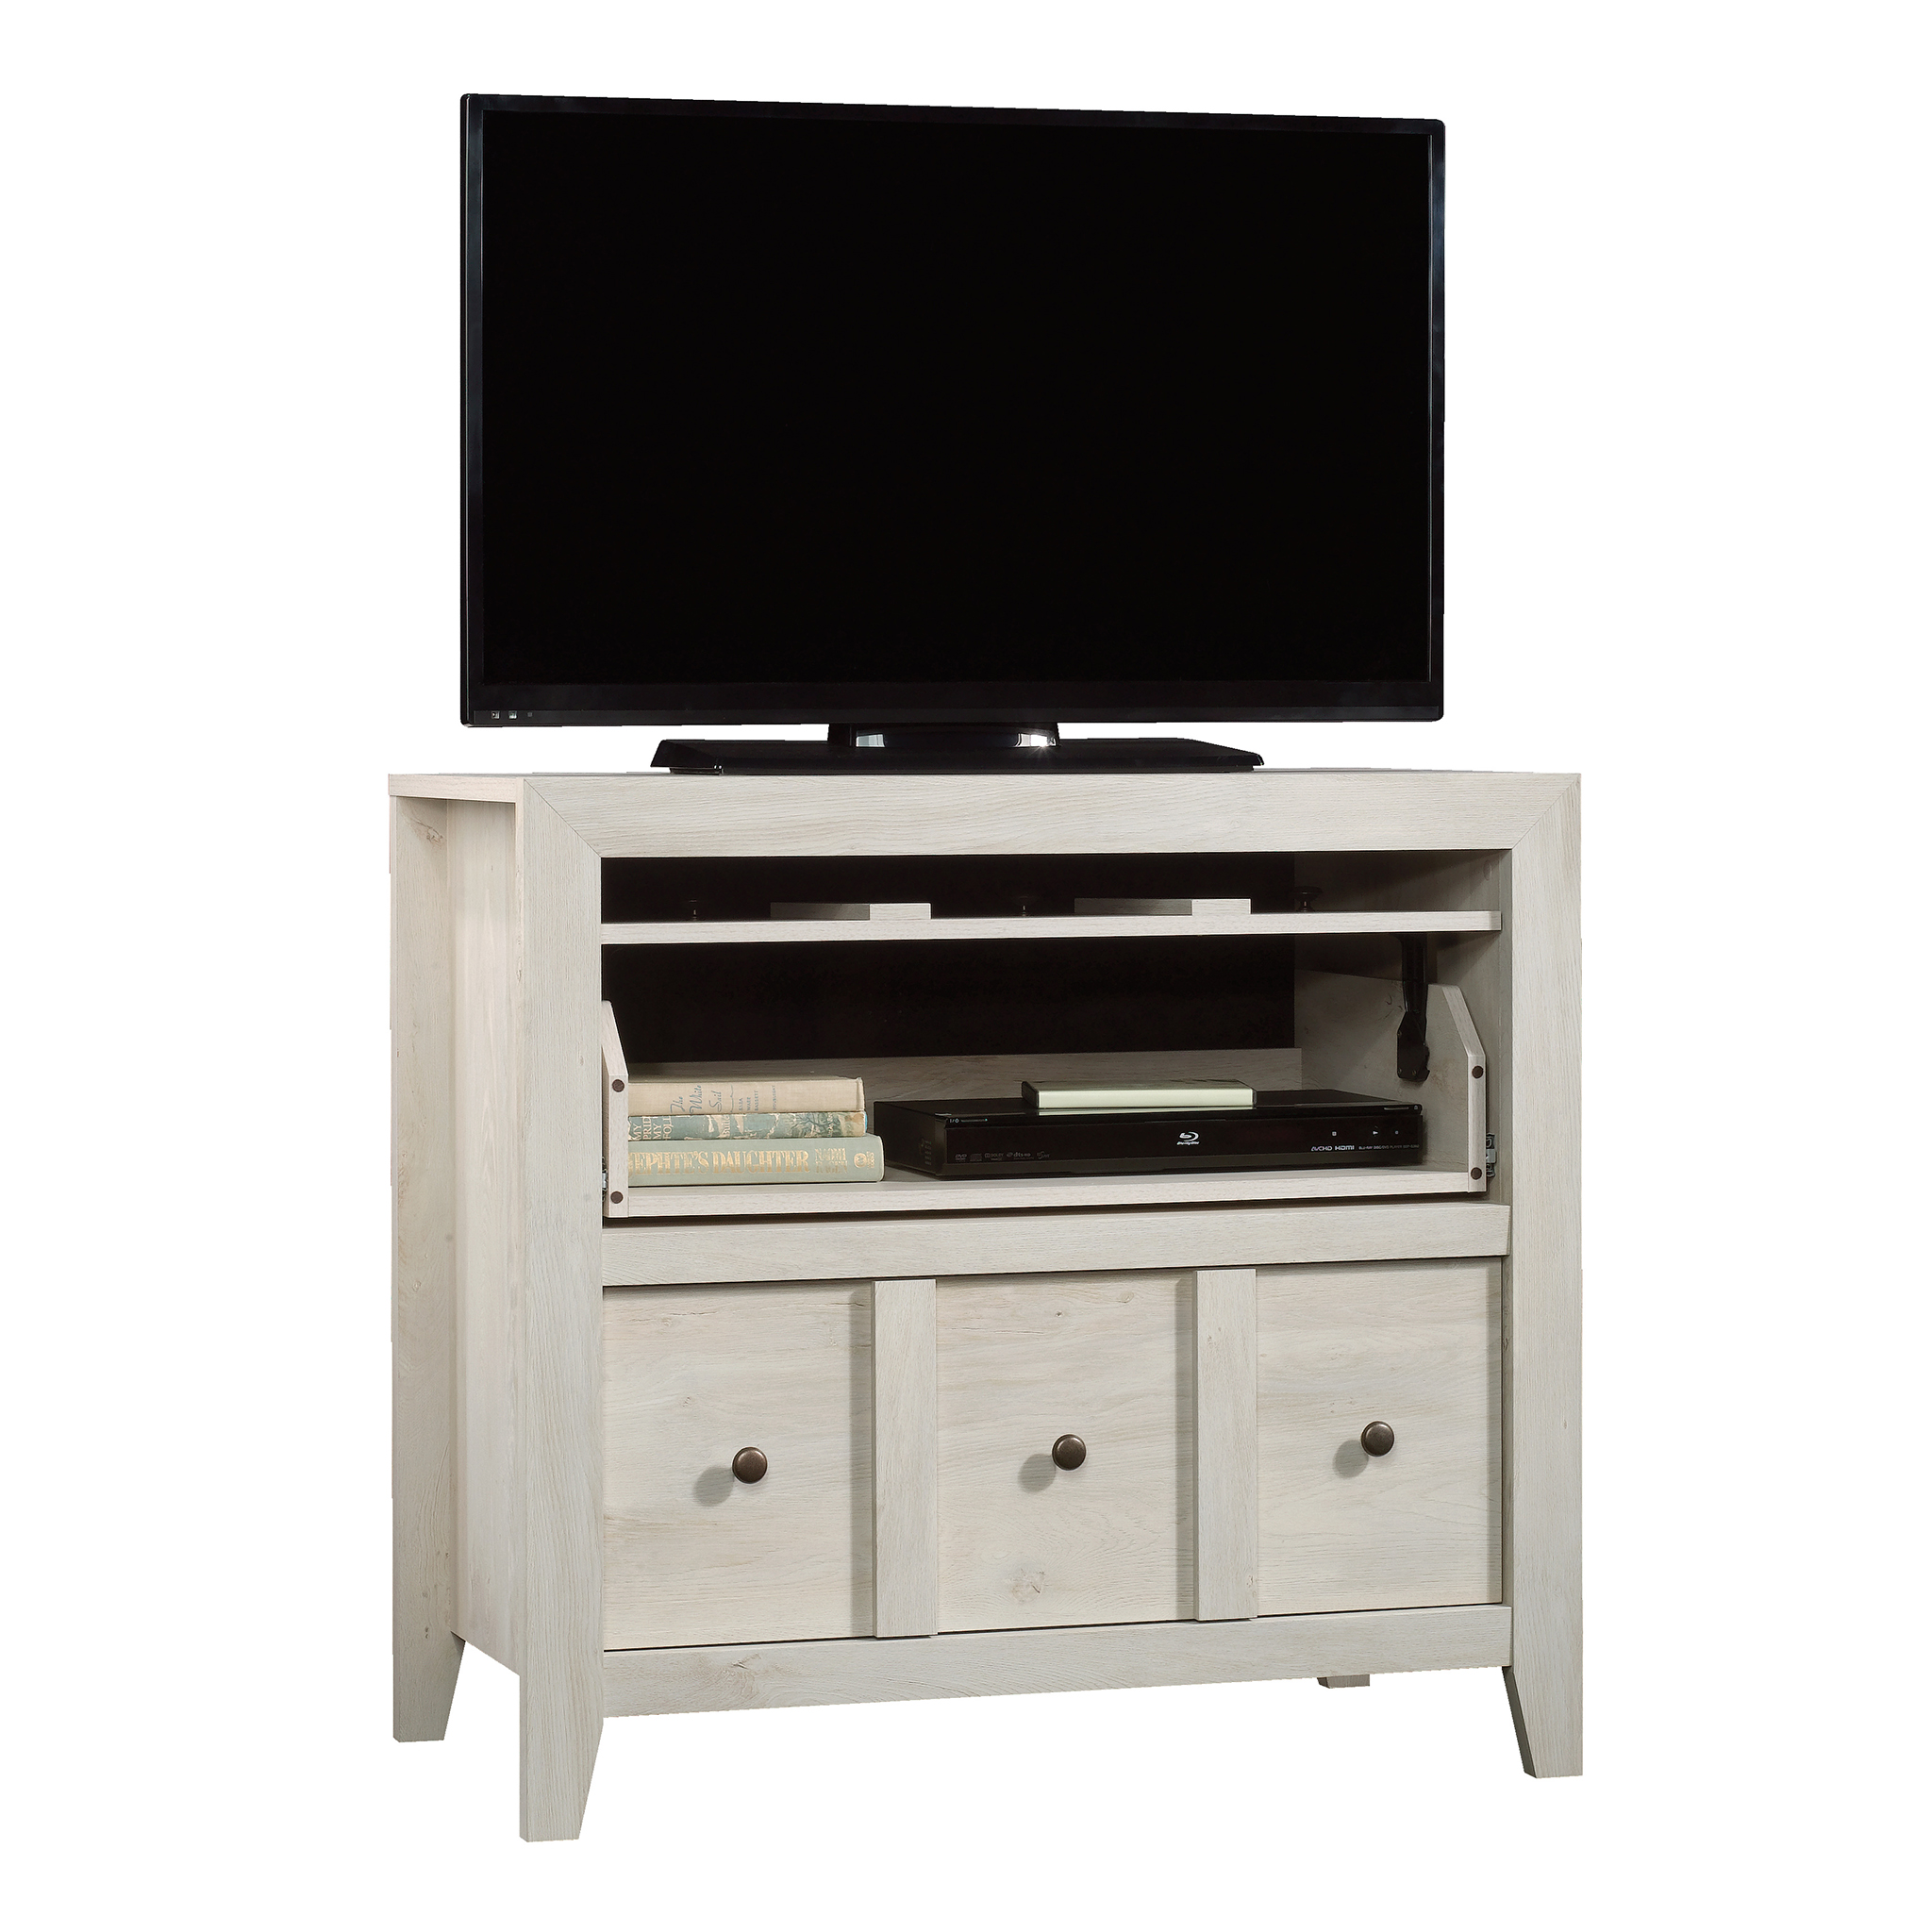 "Sauder Dakota Pass Console with File for TVs up to 42"", Chalked Chestnut Finish"